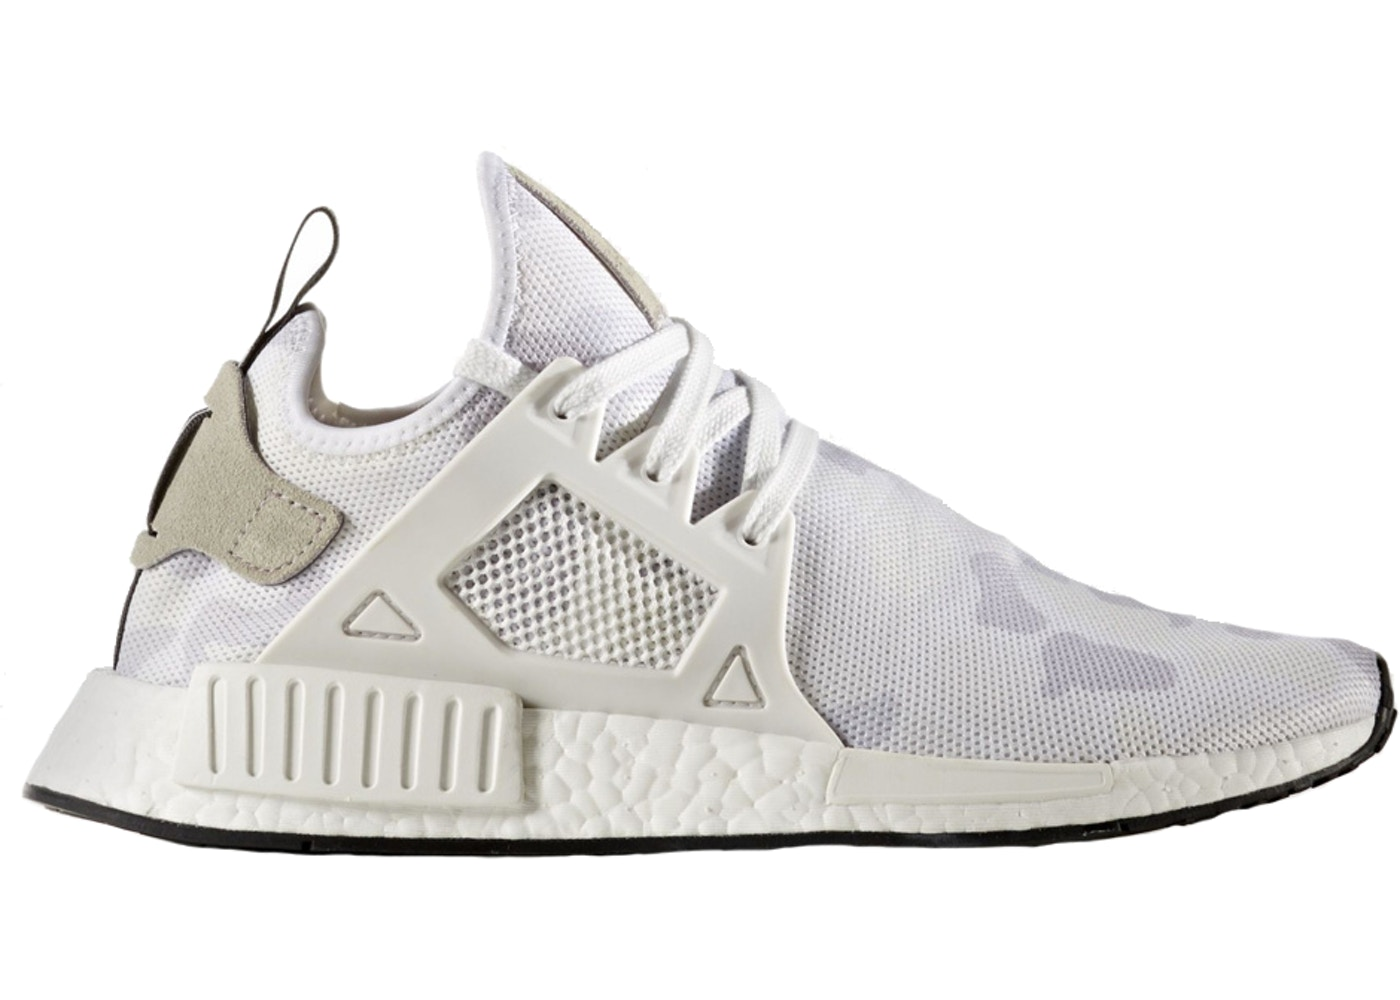 reputable site feddd 13b14 Buy adidas NMD XR1 Shoes & Deadstock Sneakers